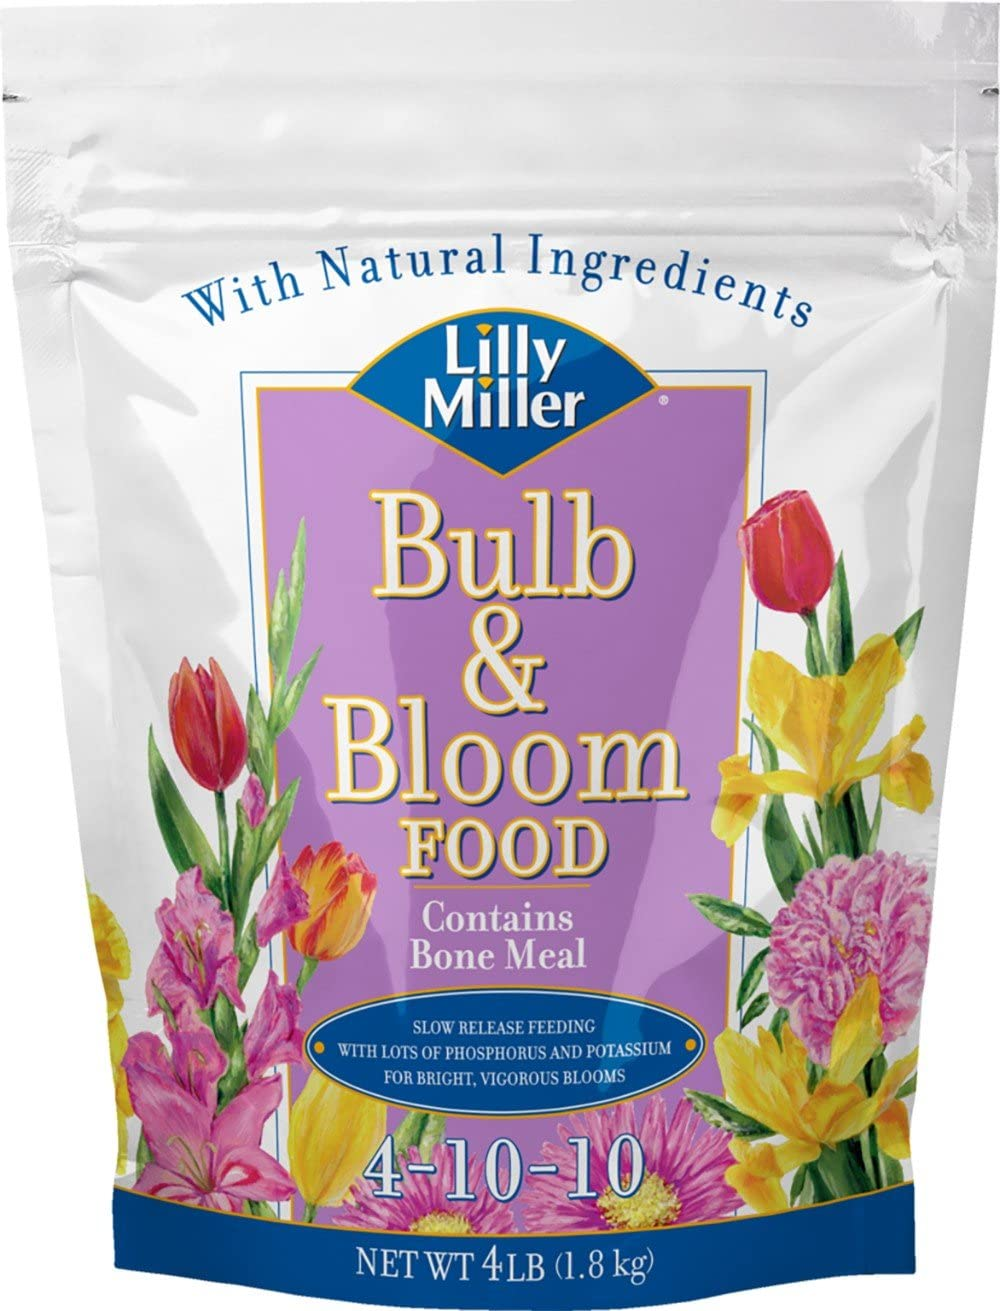 Lilly Miller Bulb & Bloom Food 4-10-10 4lb